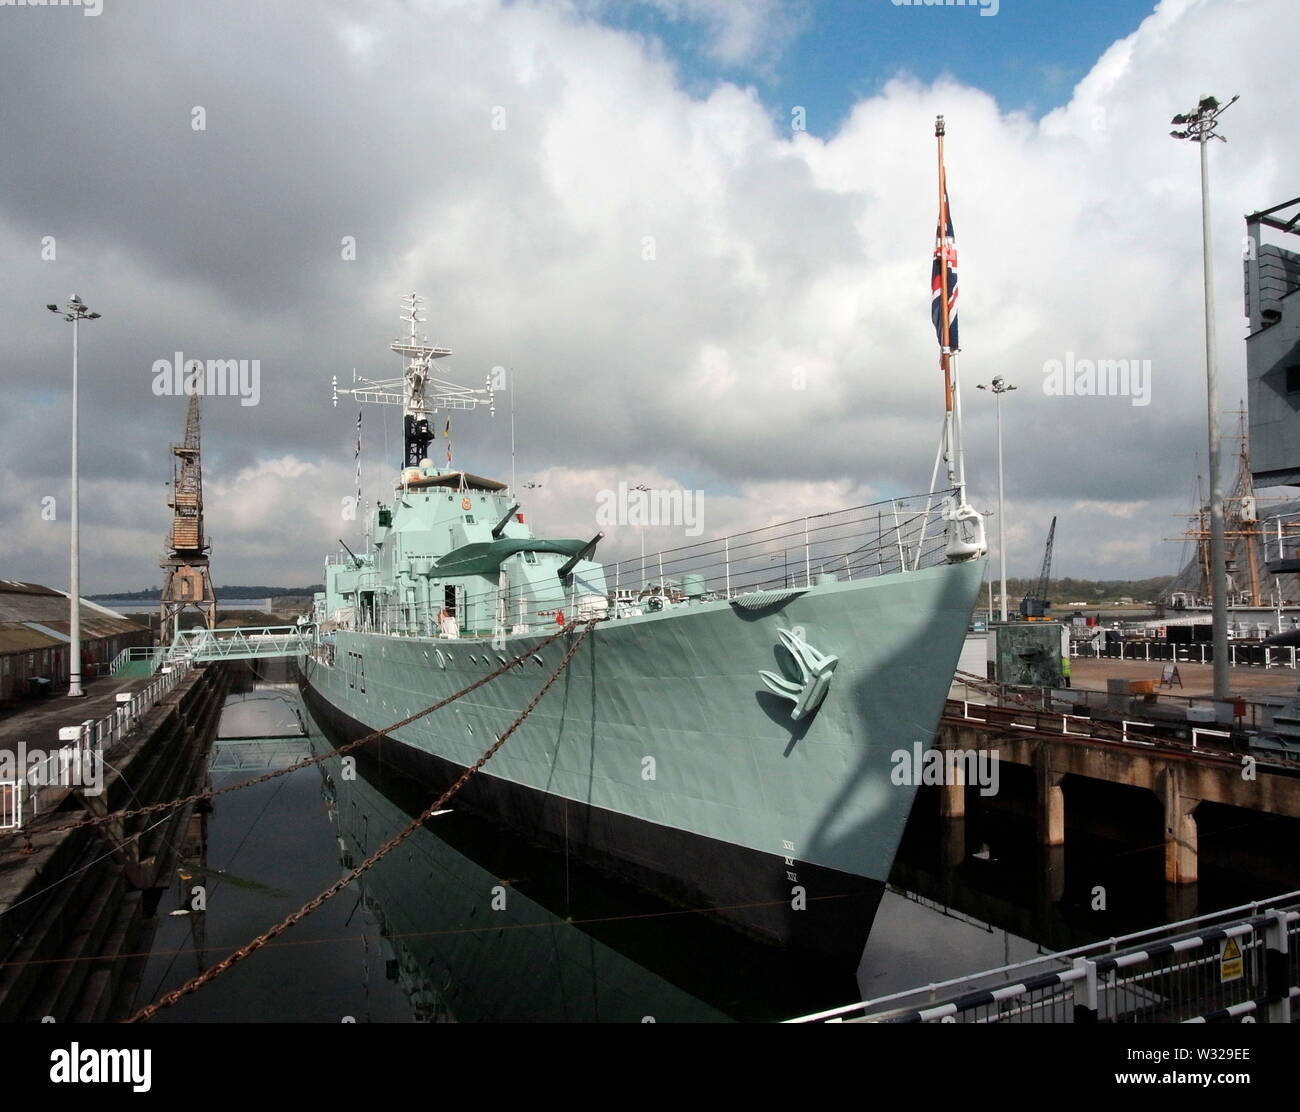 AJAXNETPHOTO. 3RD APRIL, 2019. CHATHAM, ENGLAND. - WWII DESTROYER 75TH ANNIVERSARY - HMS CAVALIER, WORLD WAR II C CLASS DESTROYER PRESERVED AFLOAT IN NR 2 DOCK AT THE CHATHAM HISTORIC DOCKYARD. 